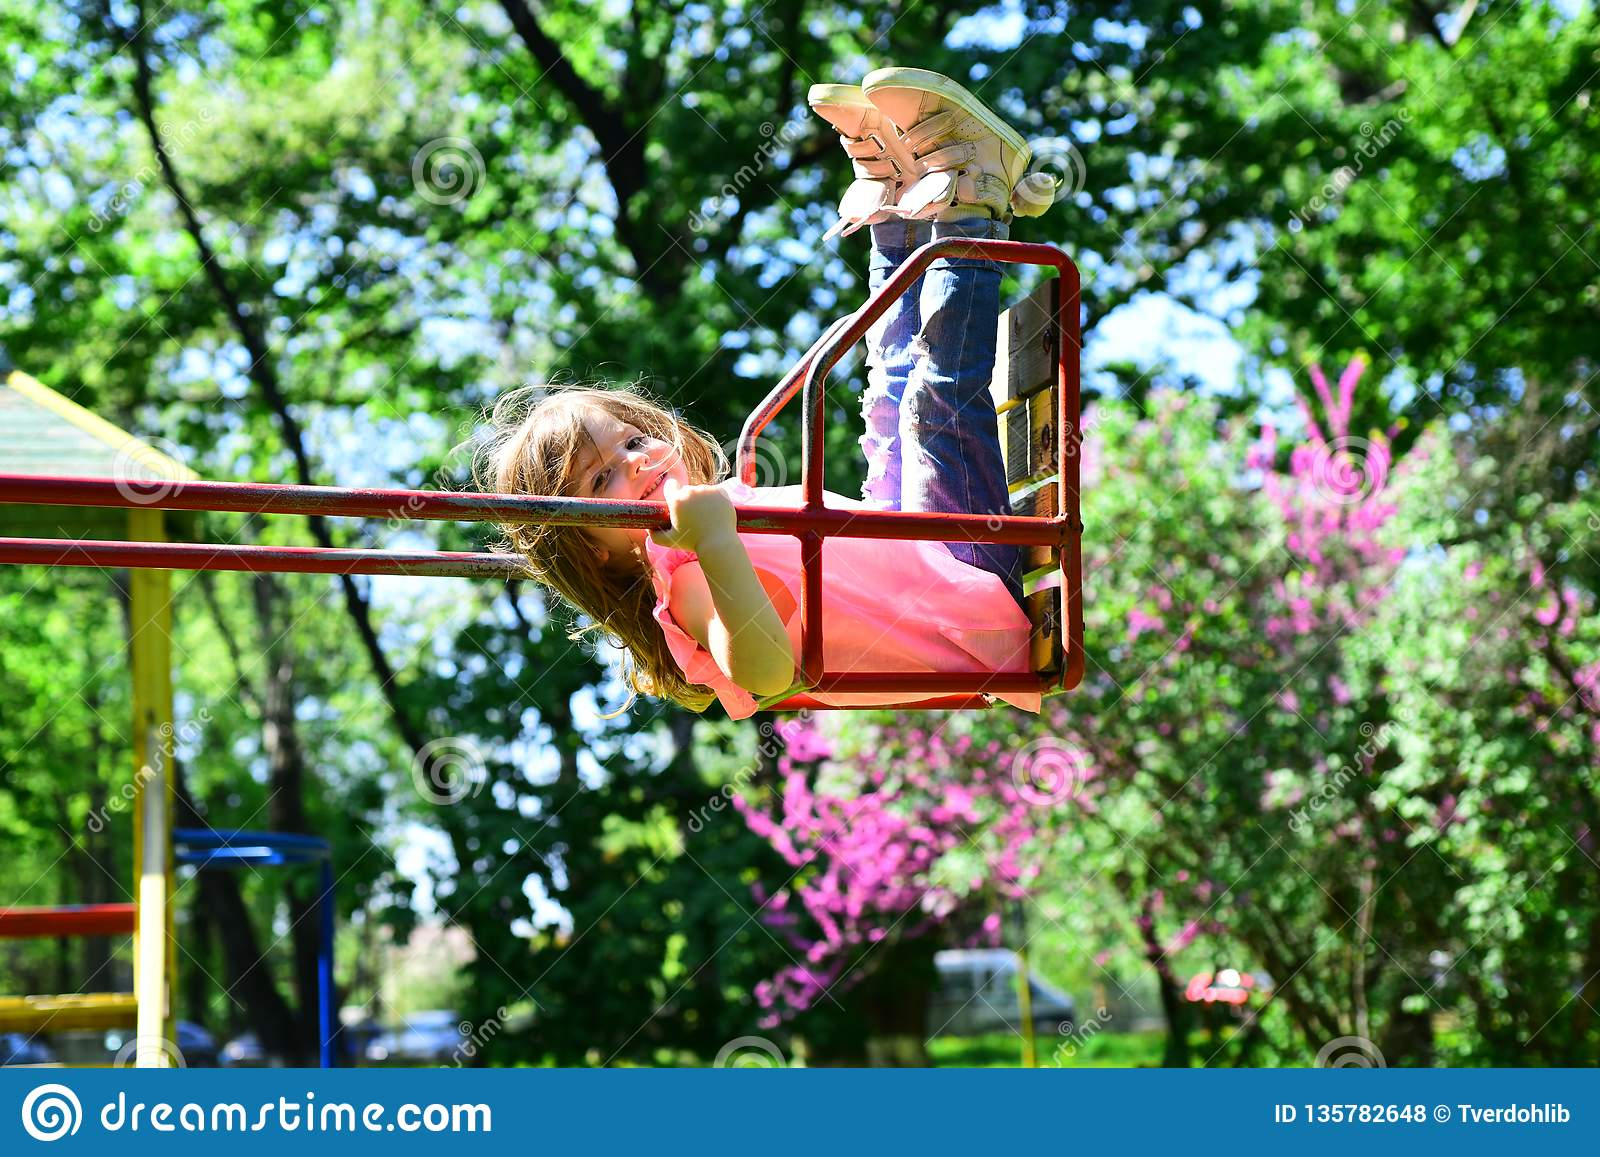 Romantic little girl on the swing, sweet dreams. Small kid playing in summer. childhood daydream .teen freedom